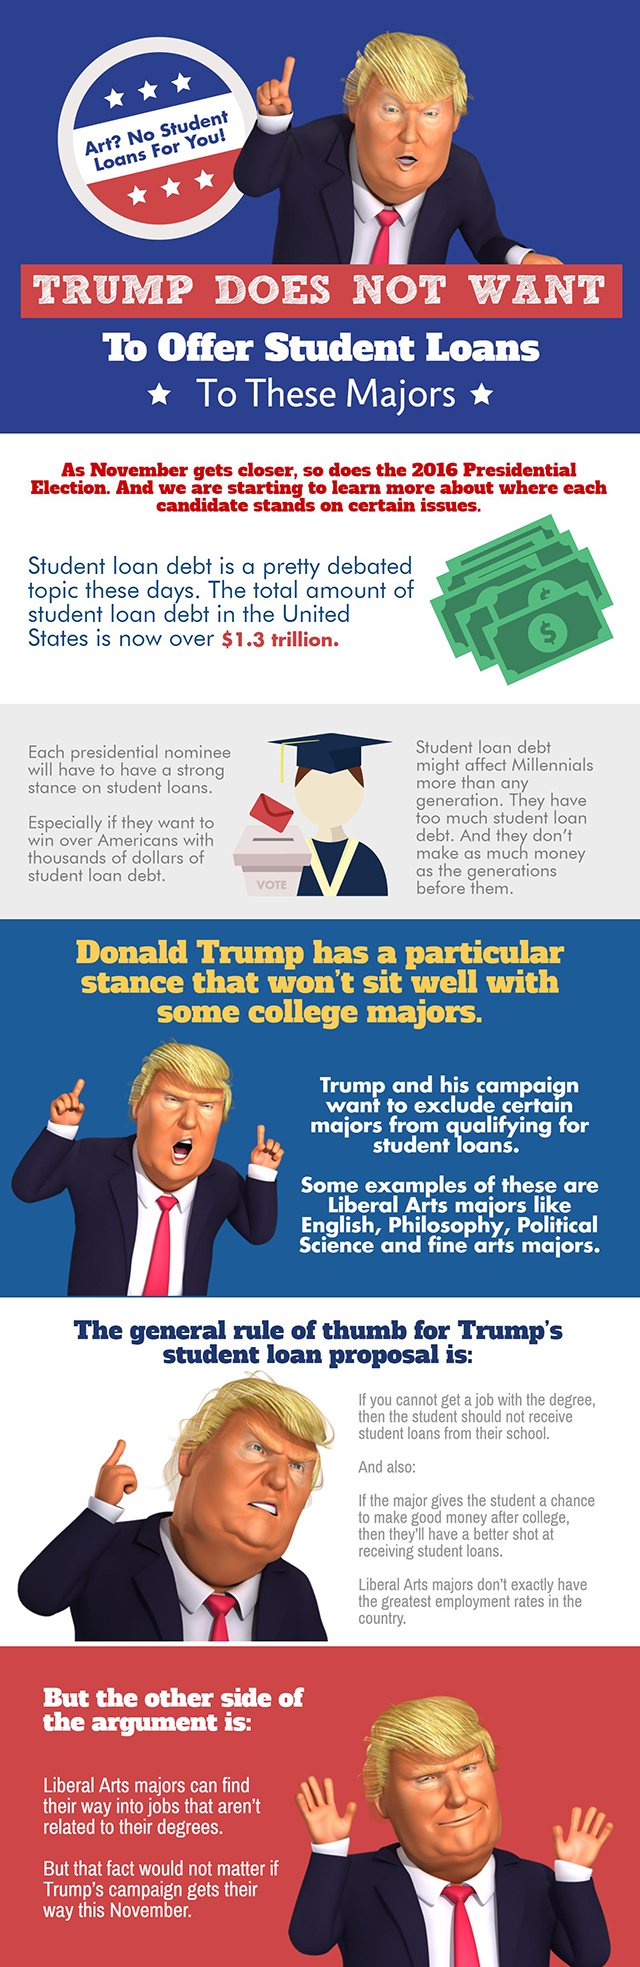 Trump Doesn't Want To Offer Student Loans To These Majors - Infographic